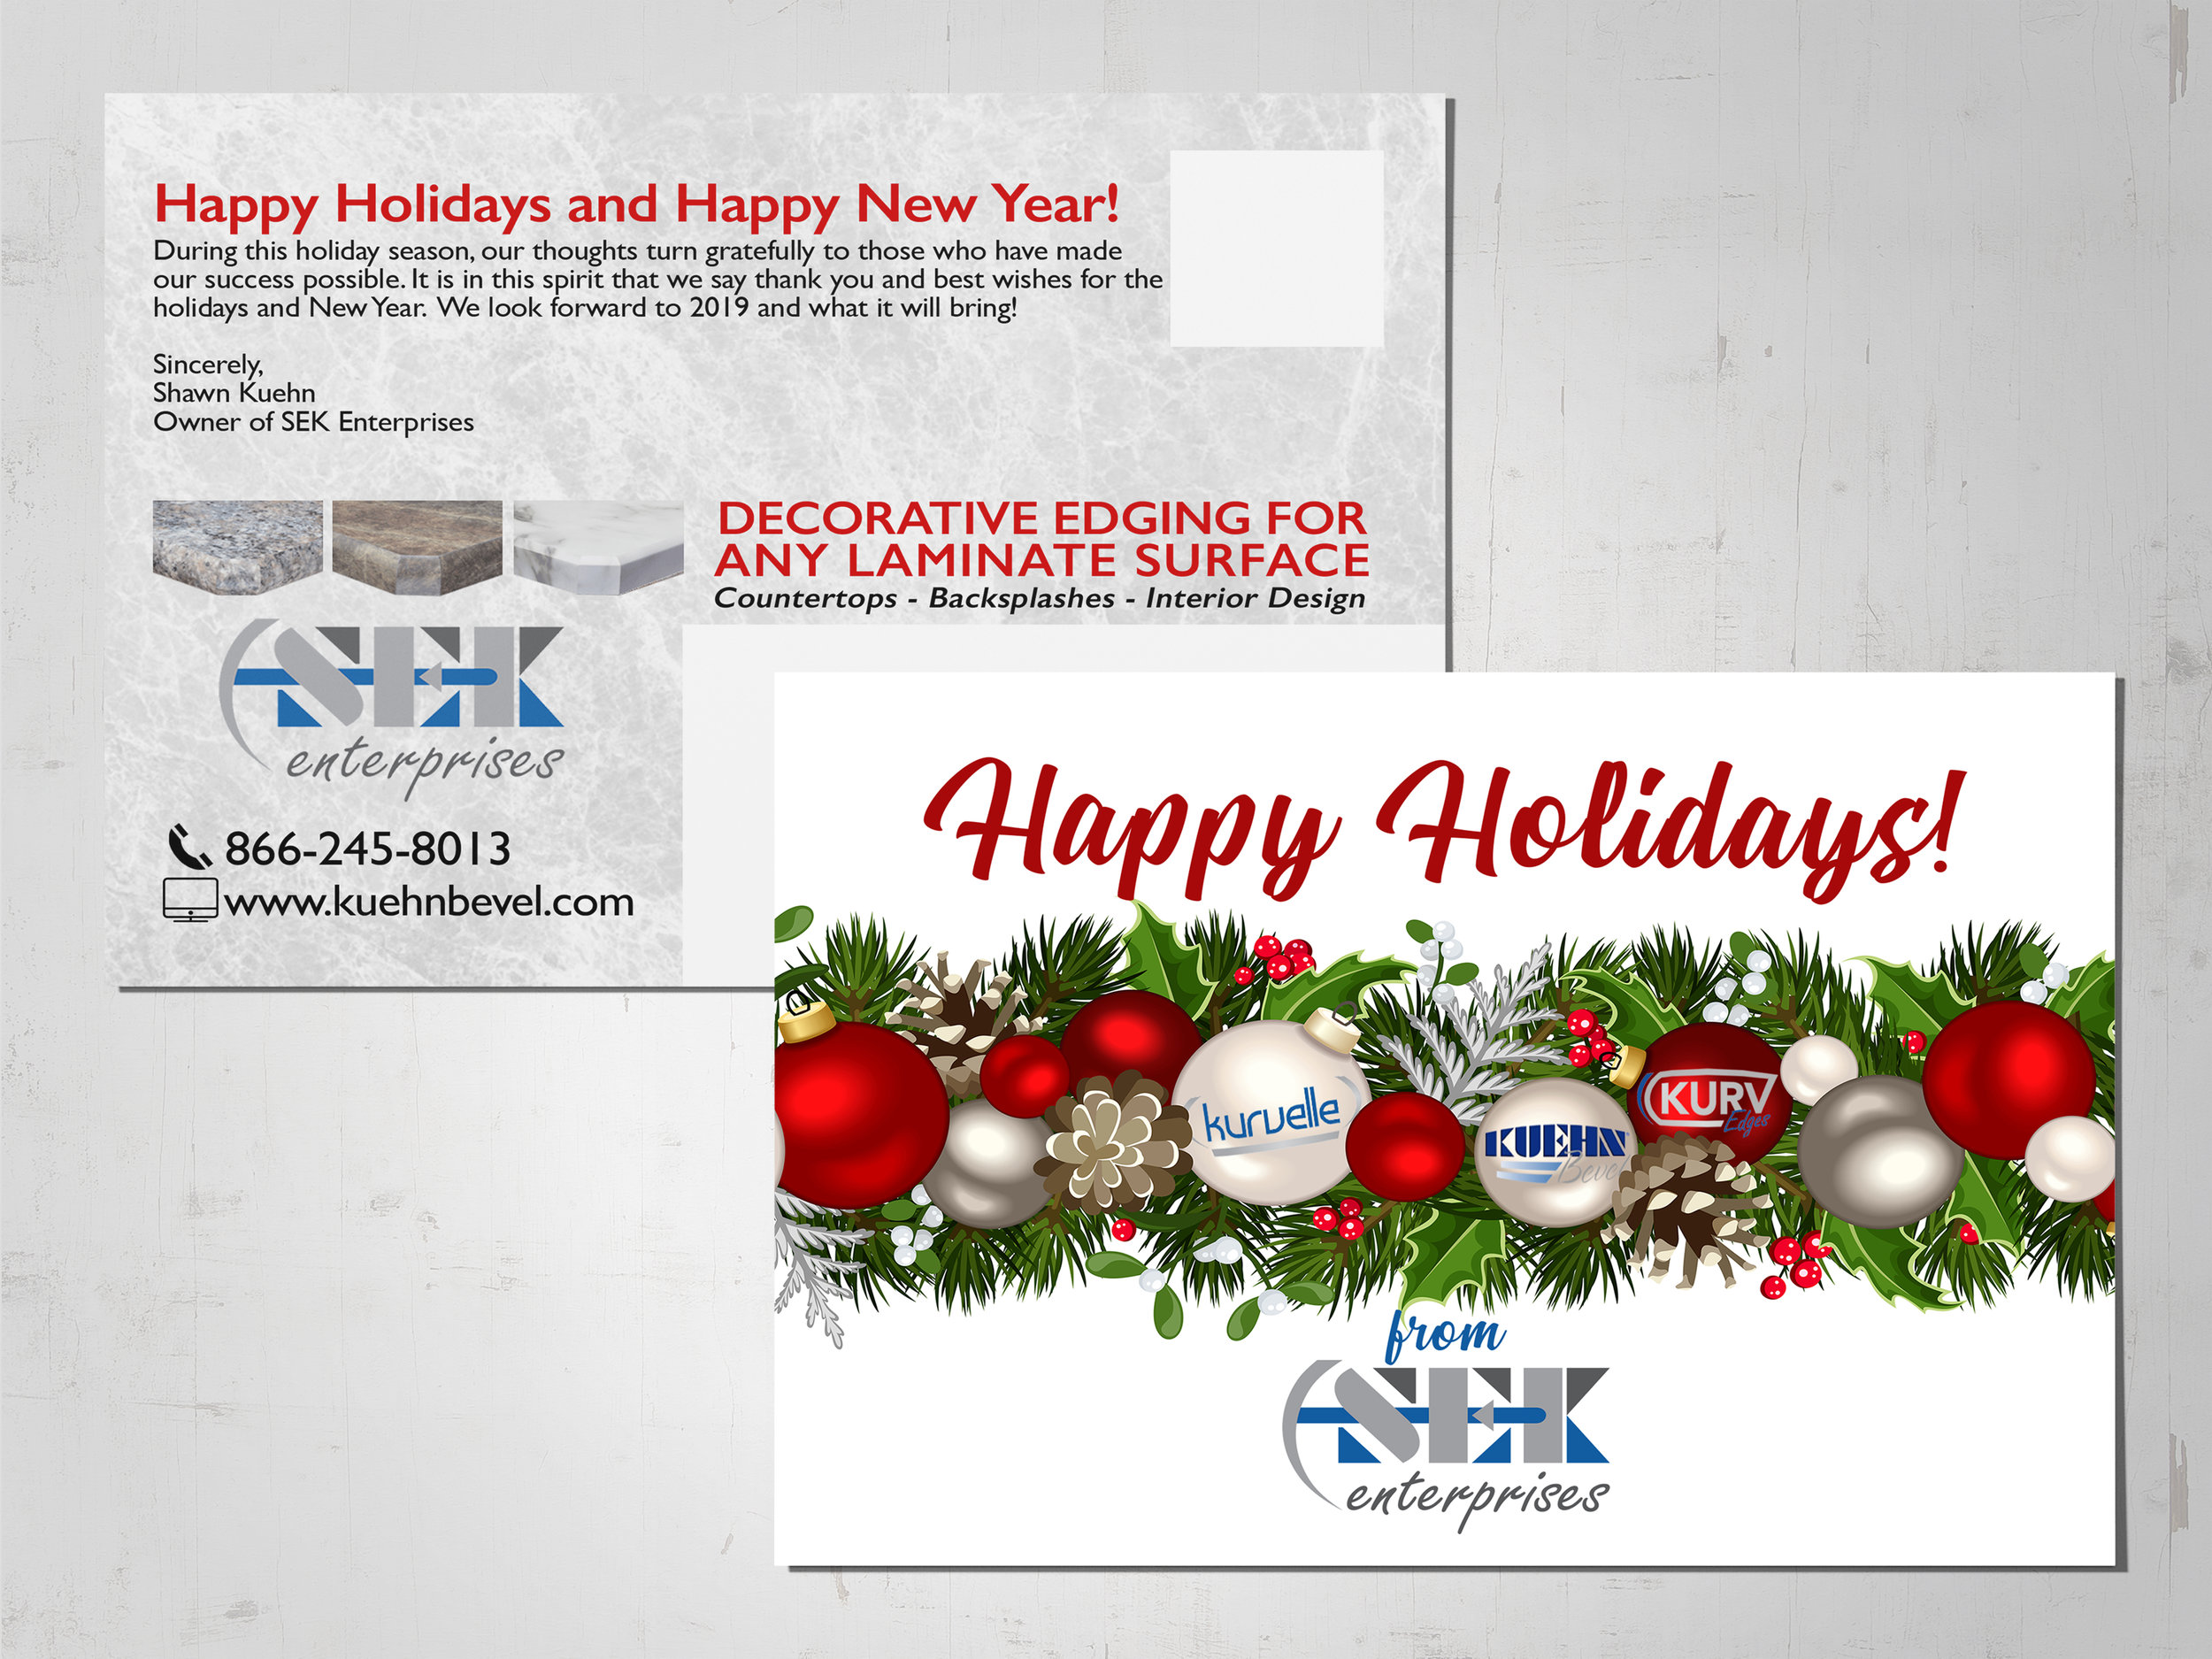 A holiday themed direct mail piece I designed for a laminate countertop edge manufacturer.